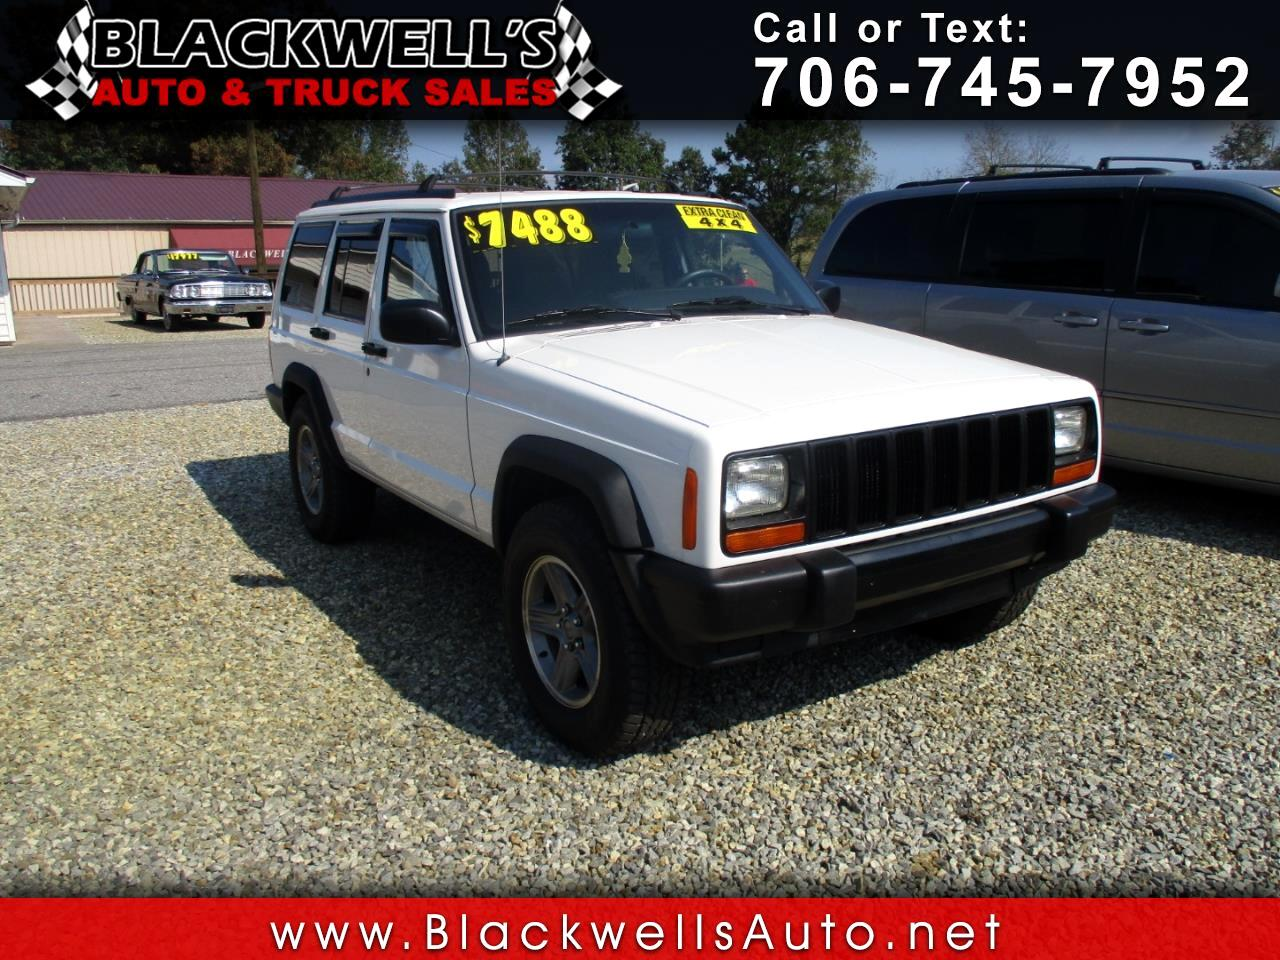 Cherokee Truck Sales >> Used 1998 Jeep Cherokee 4dr Classic For Sale In Blairsville